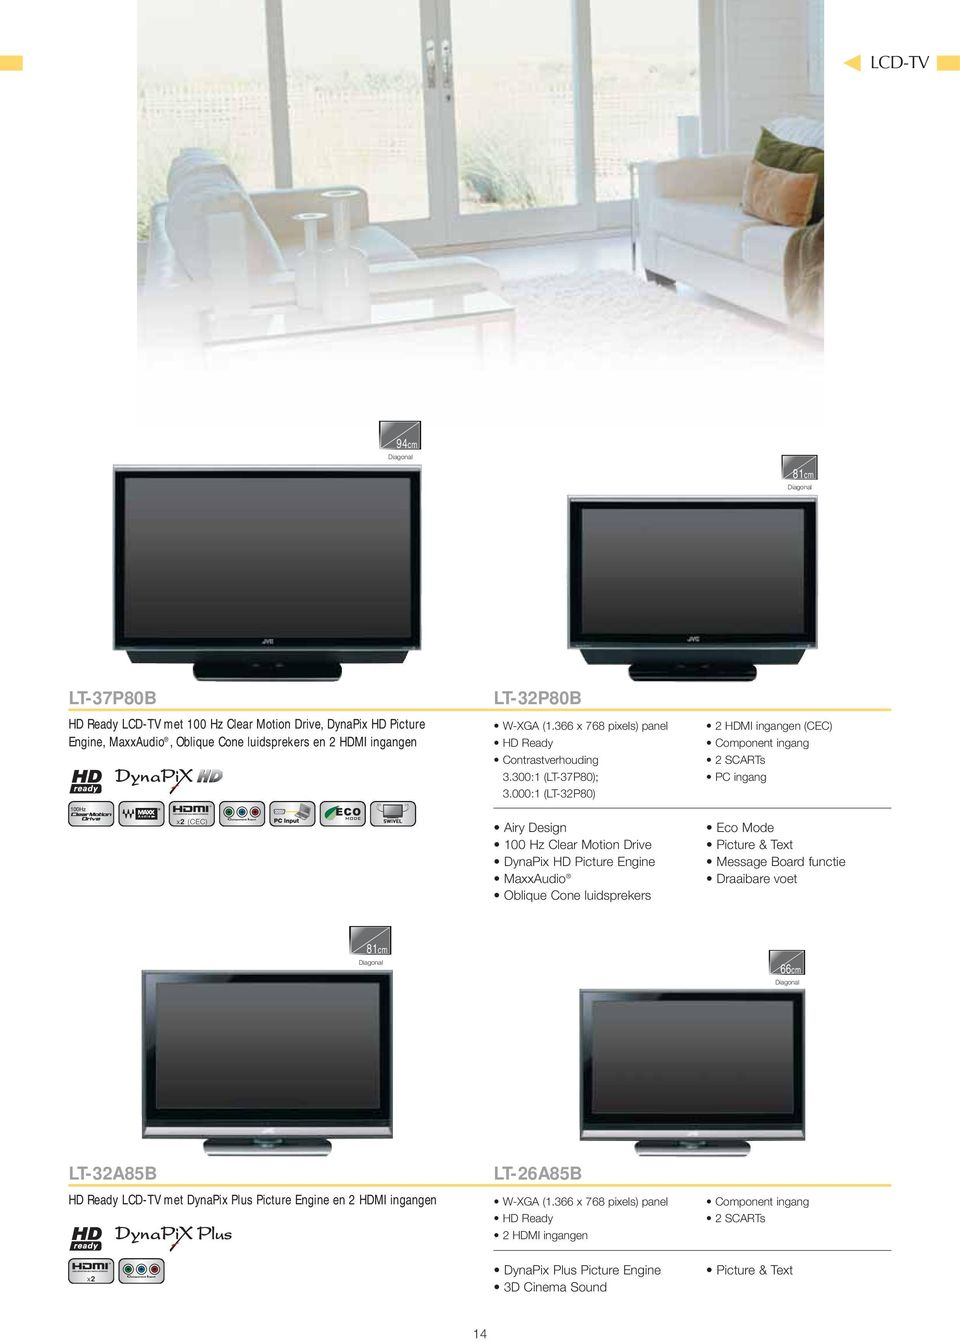 000:1 (LT-32P80) 2 HDMI ingangen (CEC) Component ingang 2 SCARTs PC ingang x2 (CEC) Airy Design 100 Hz Clear Motion Drive DynaPix HD Picture Engine MaxxAudio Oblique Cone luidsprekers Eco Mode